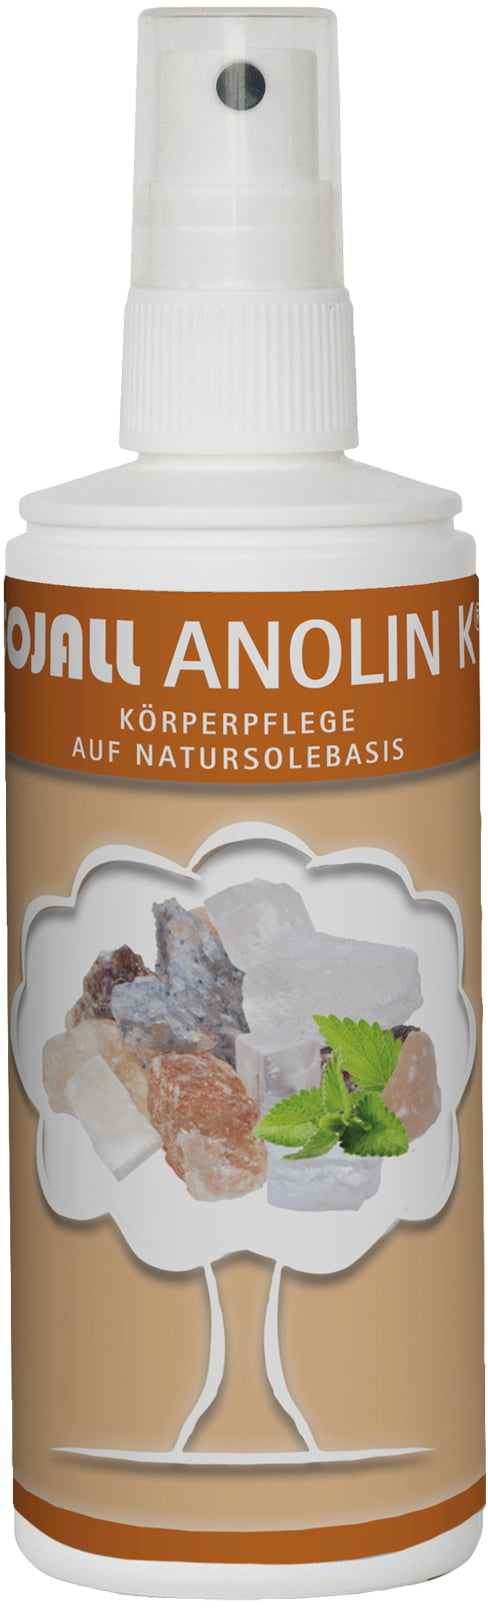 SOJALL Anolin K - 150 ml